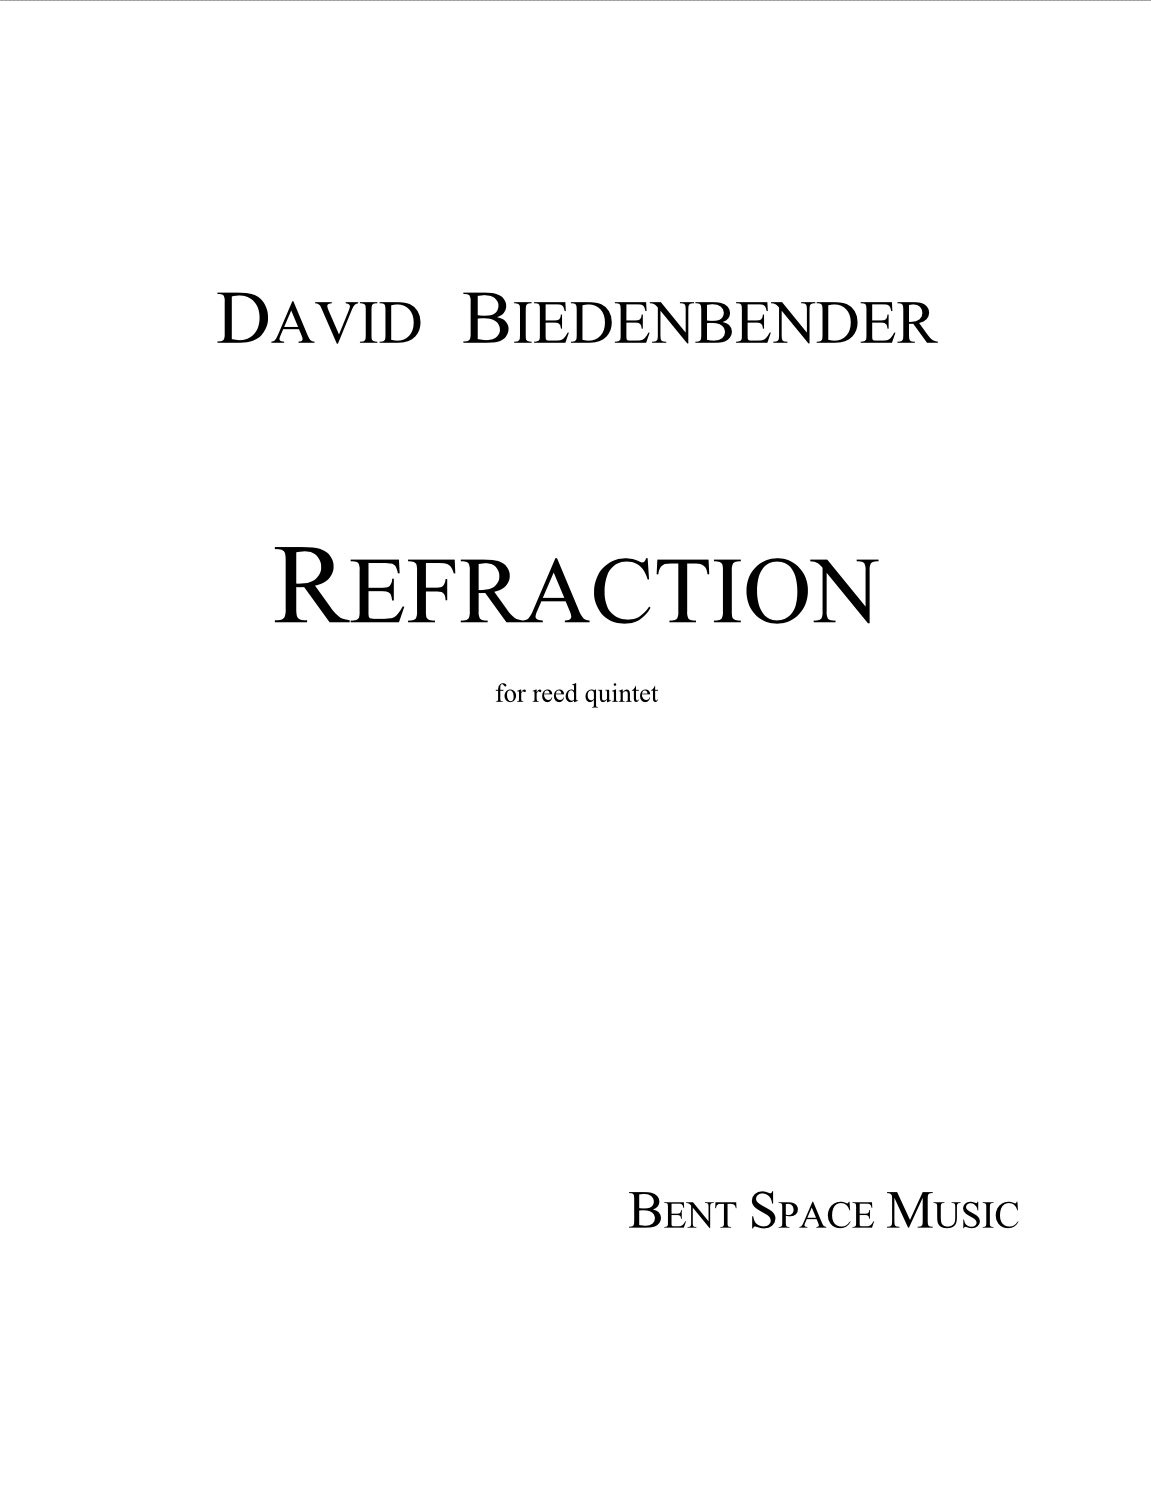 Refraction  by David Biedenbender